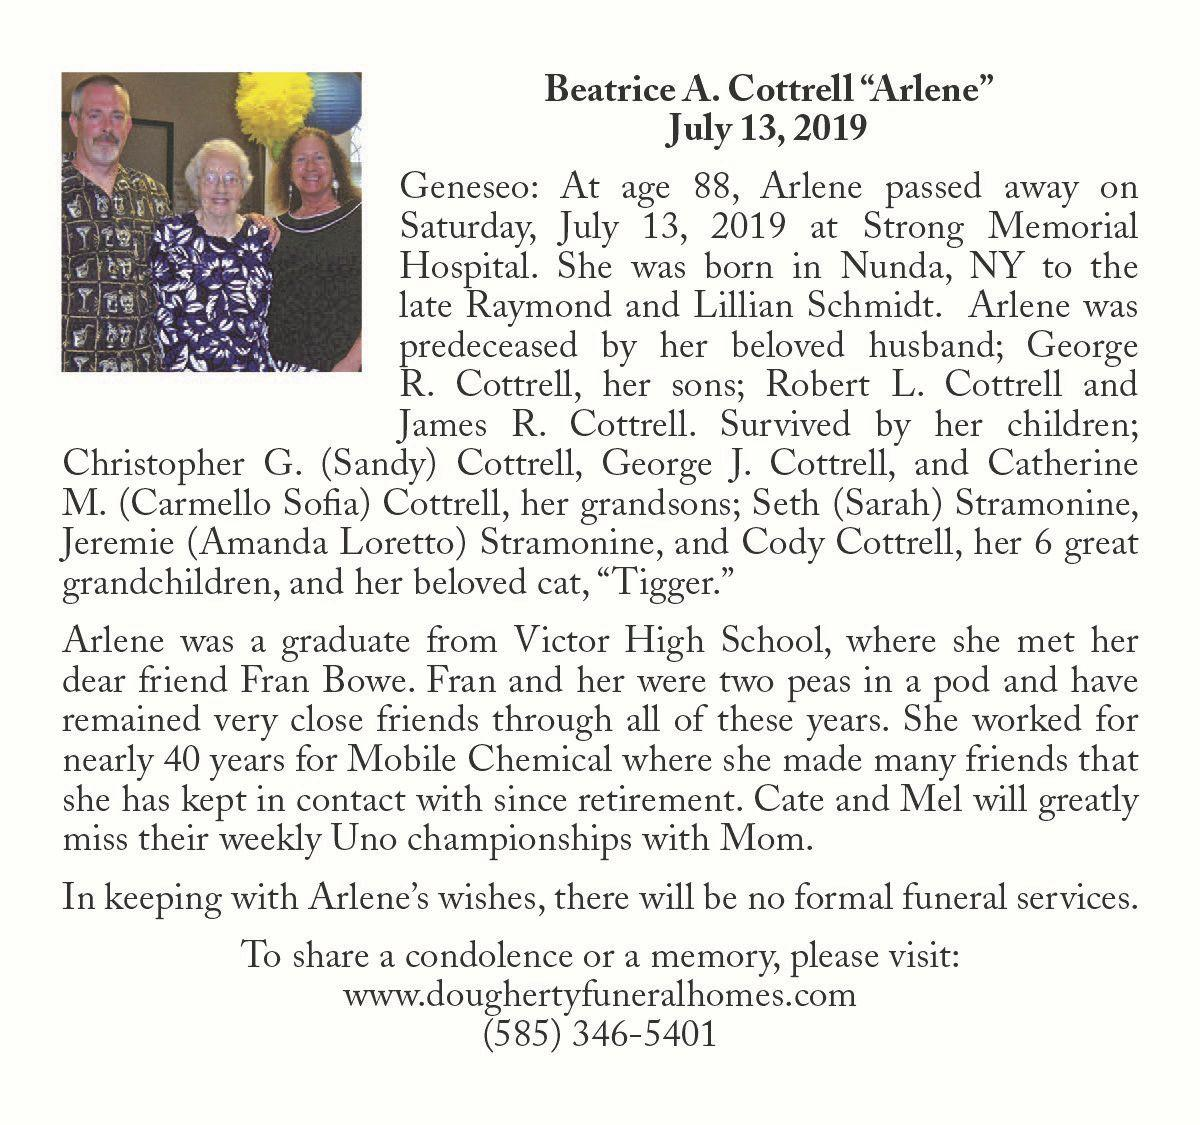 """Beatrice A. Cottrell """"Arlene"""" ~ July 13, 2019"""